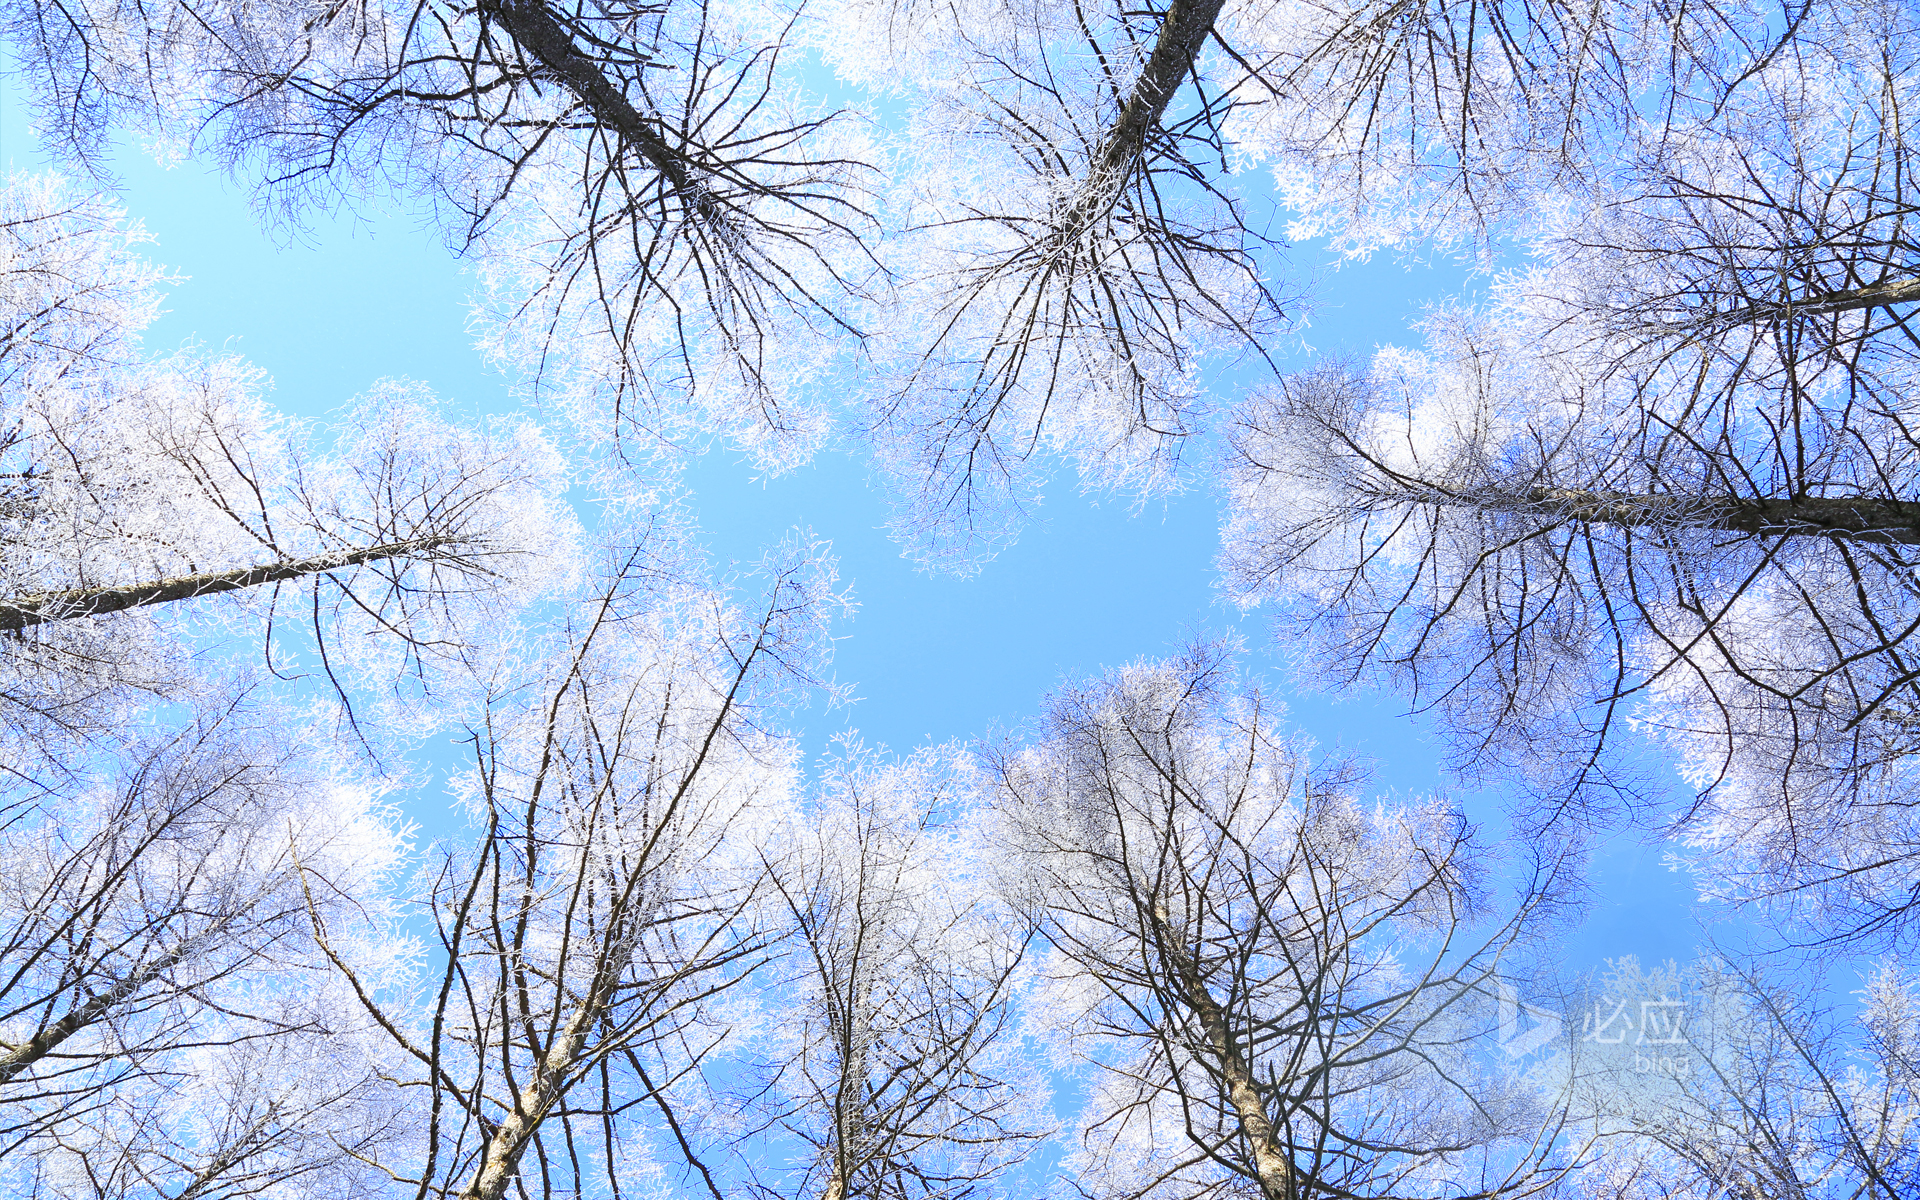 Over the larch forest in Nagano